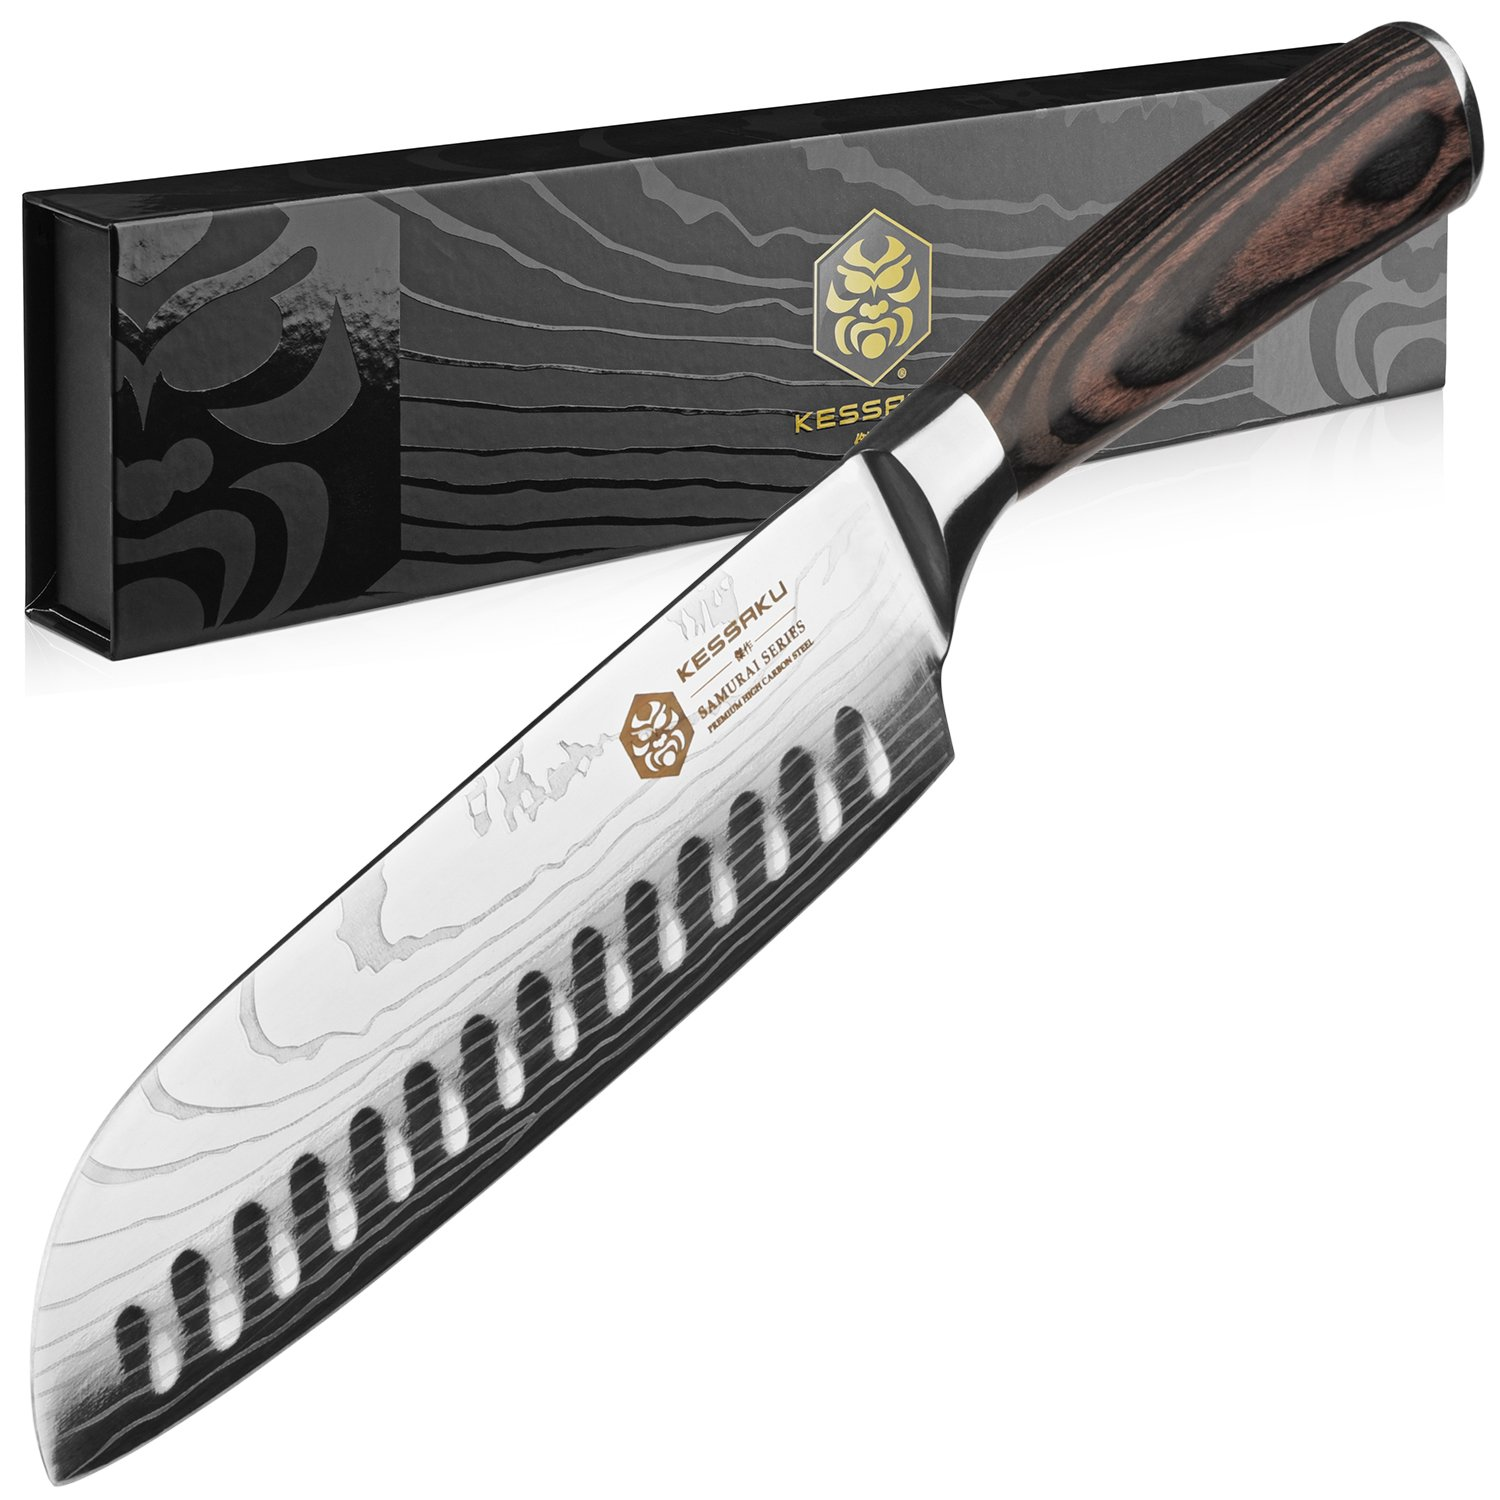 Kessaku Santoku Knife - Samurai Series - Japanese Etched High Carbon Steel, 7-Inch